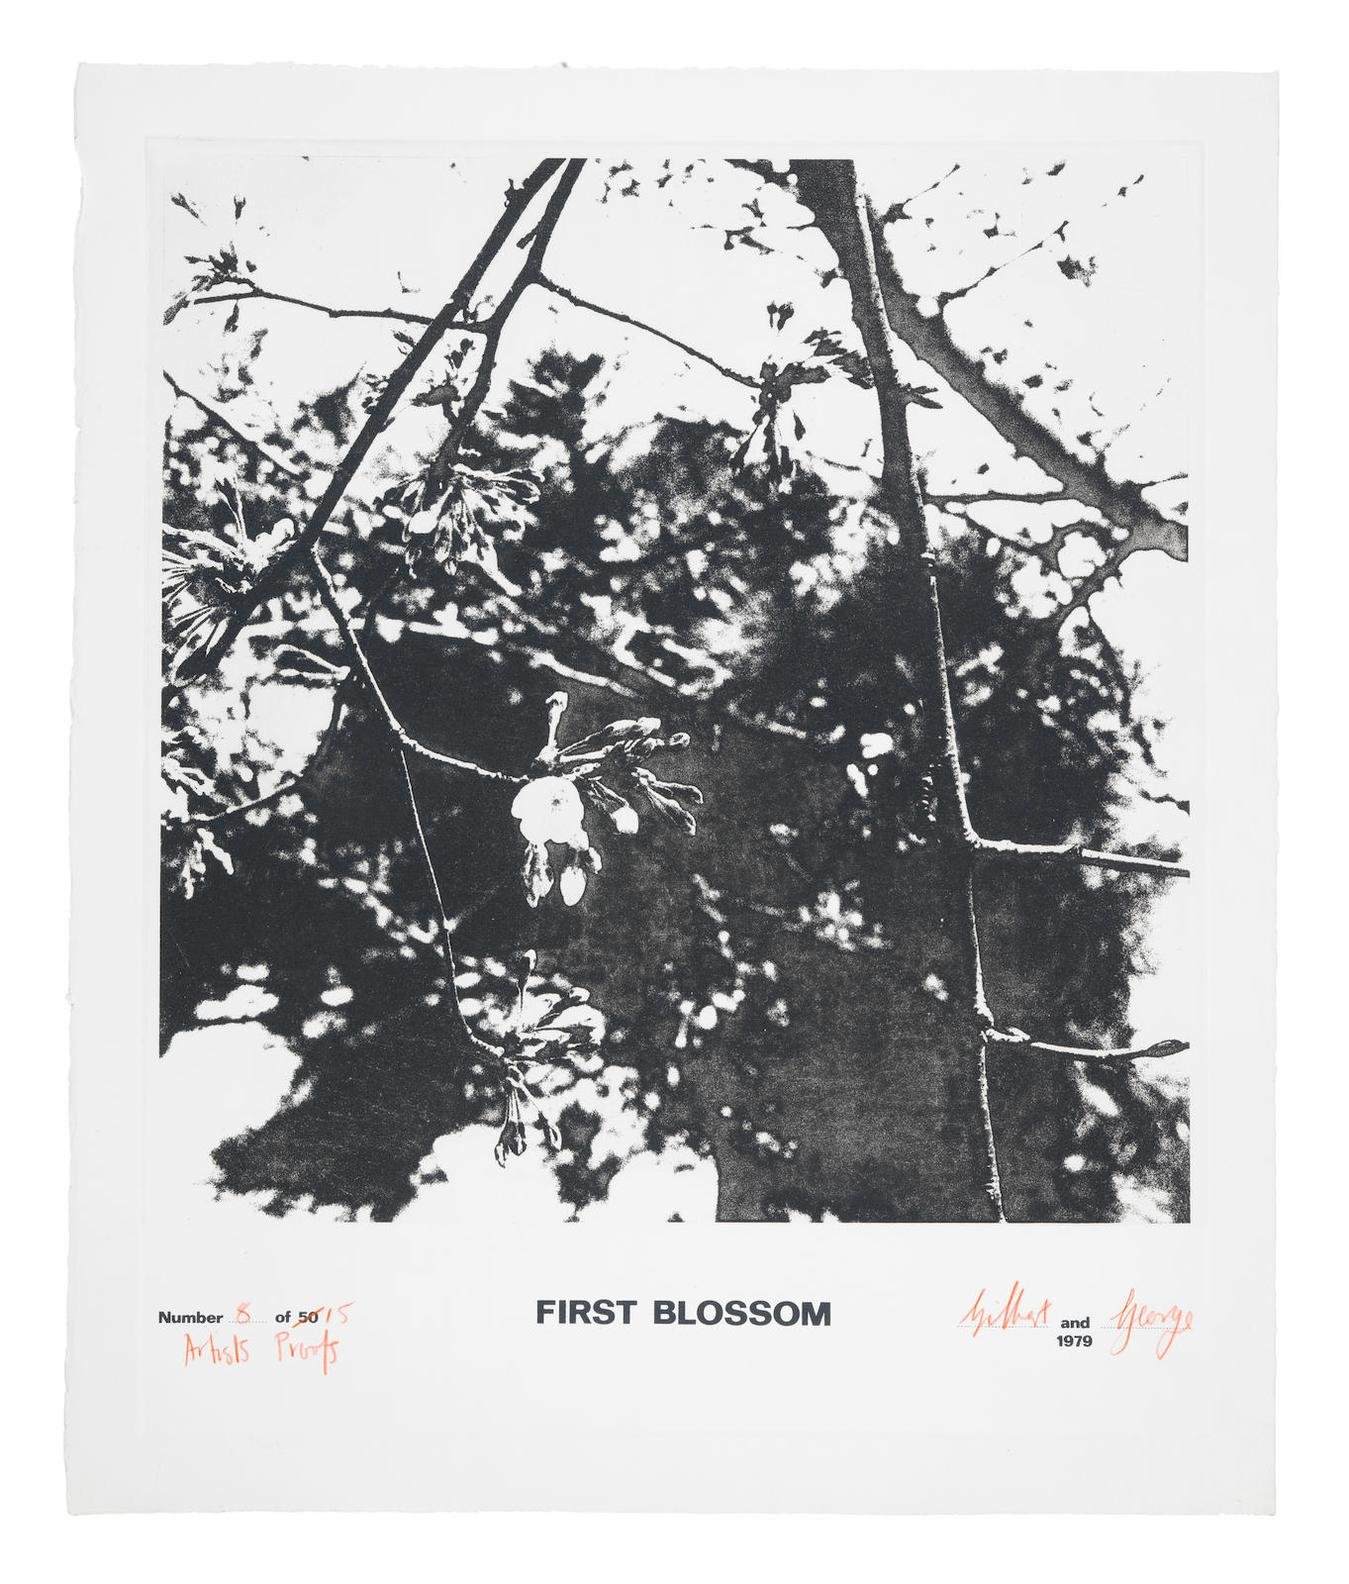 Gilbert and George-First Blossom-1979